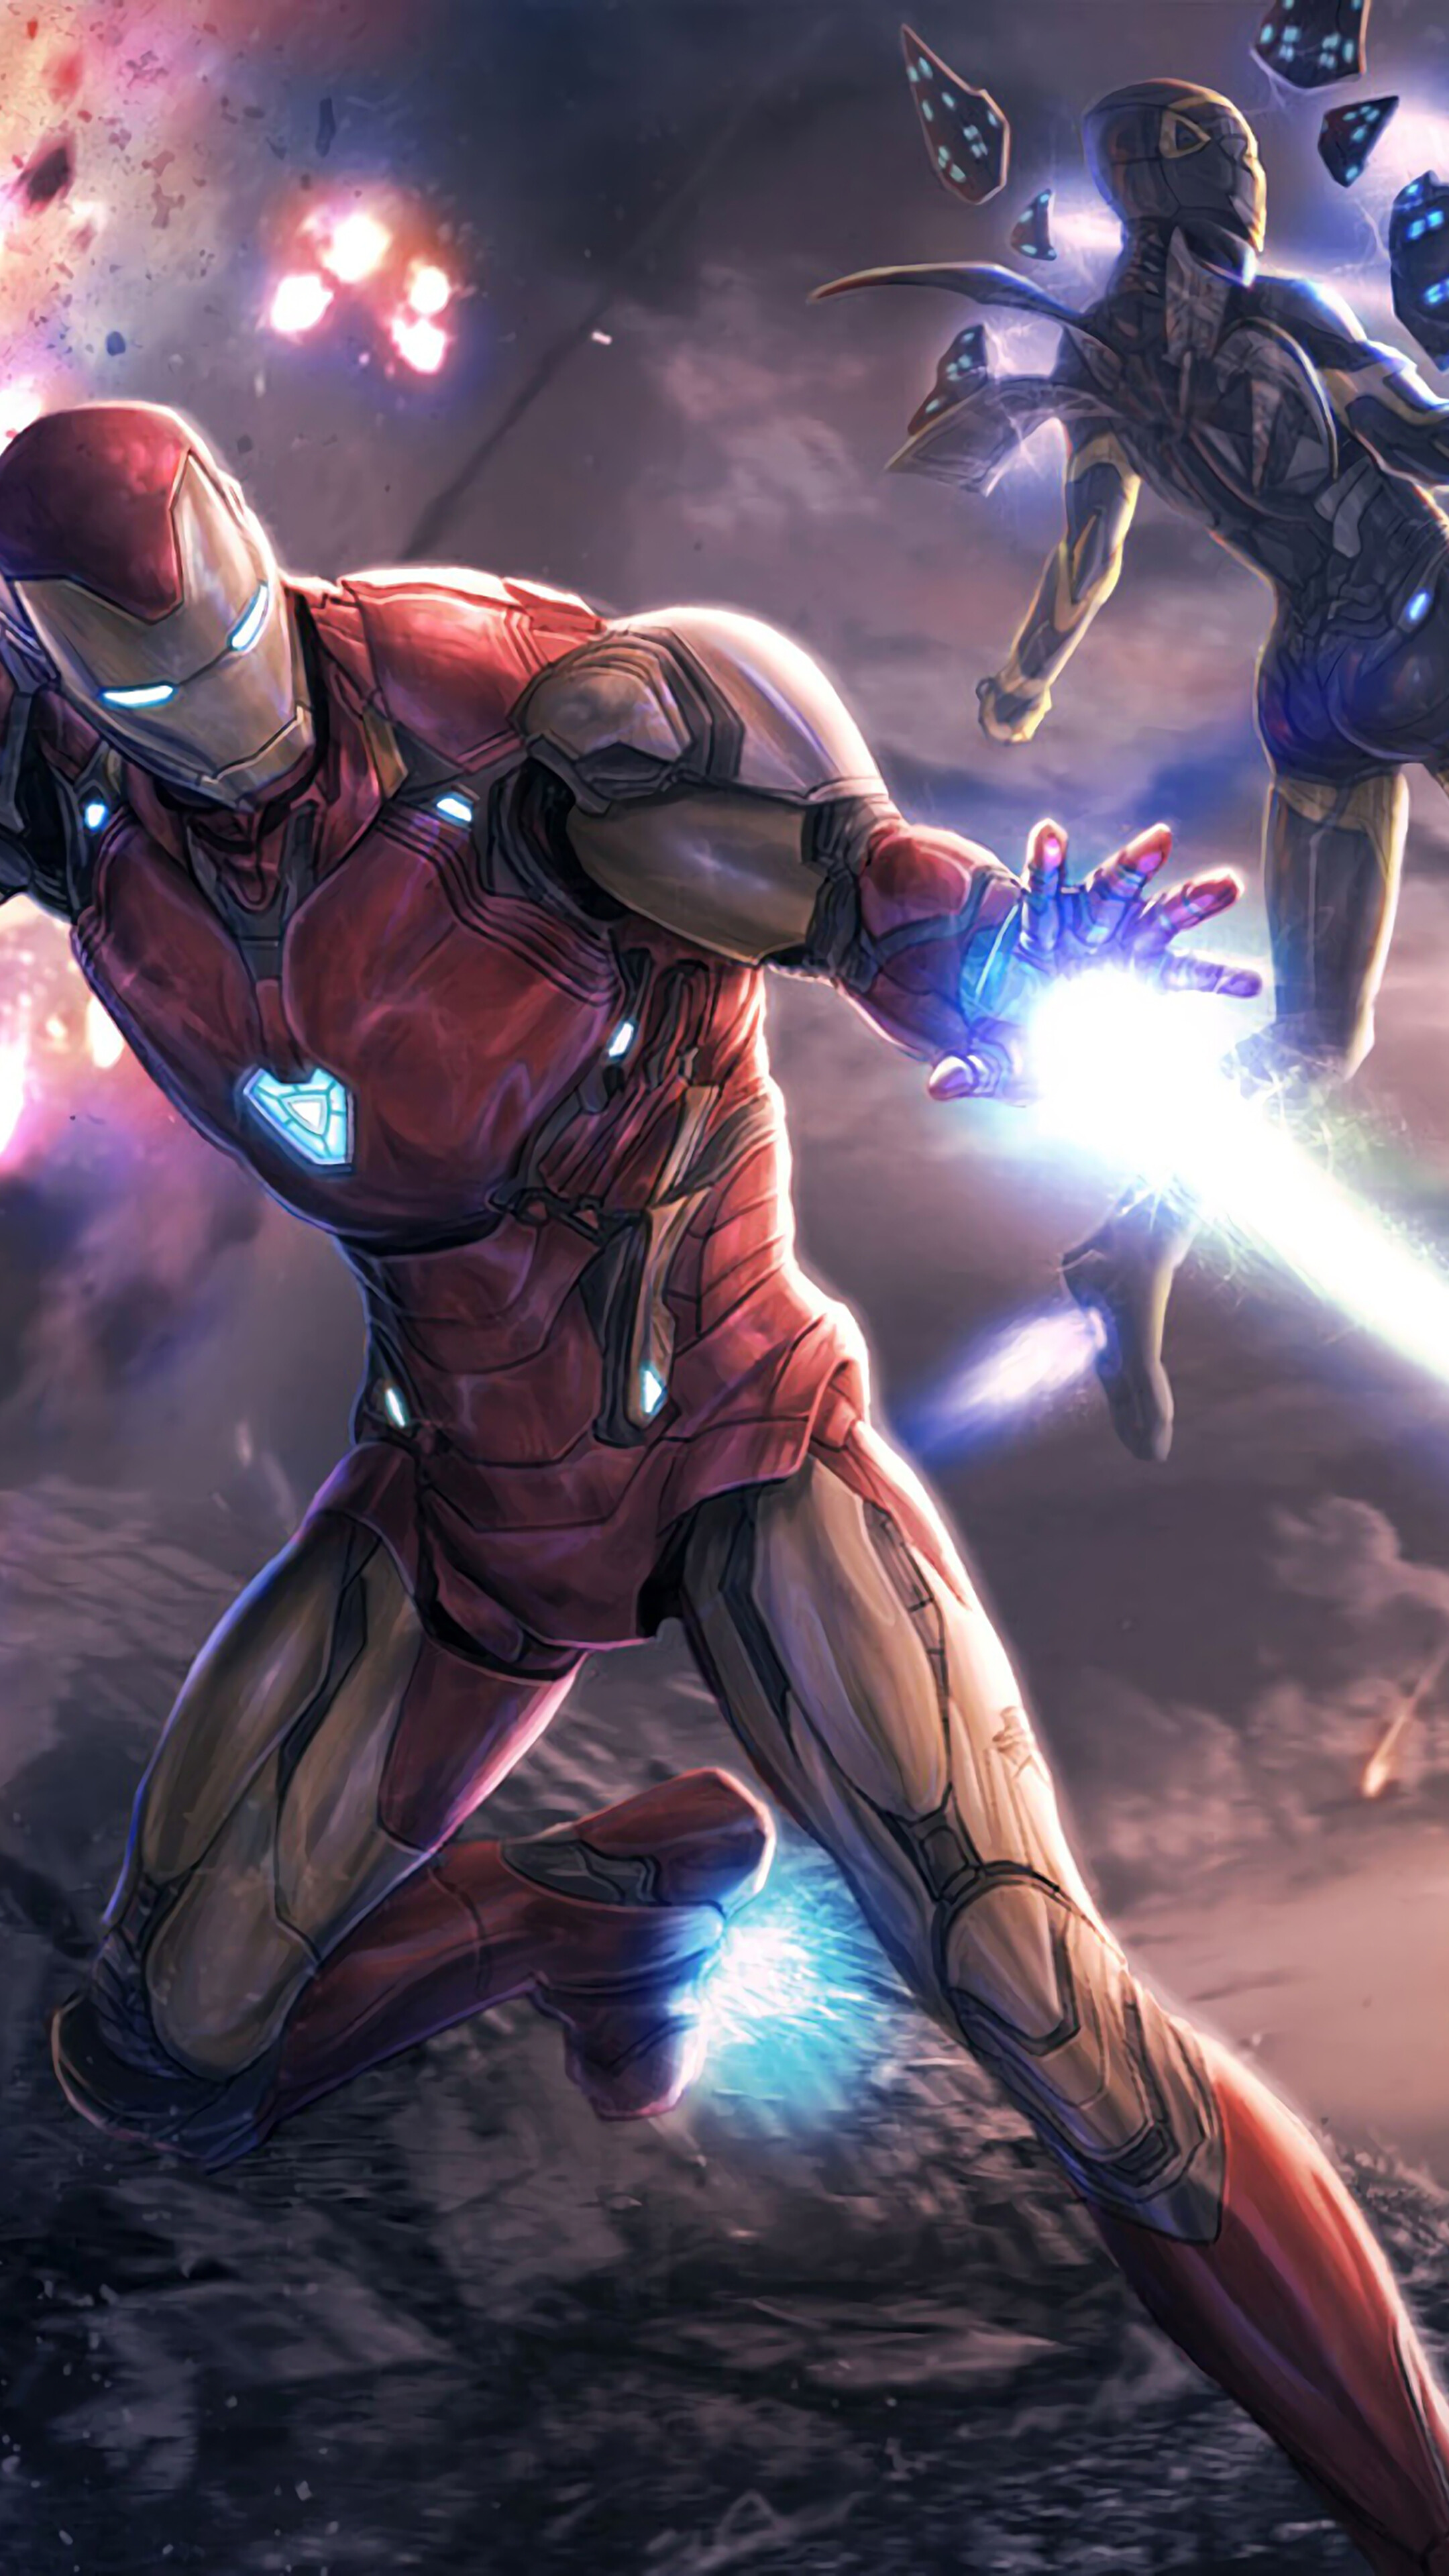 Avengers Endgame Iron Man 2160x3840 Download Hd Wallpaper Wallpapertip